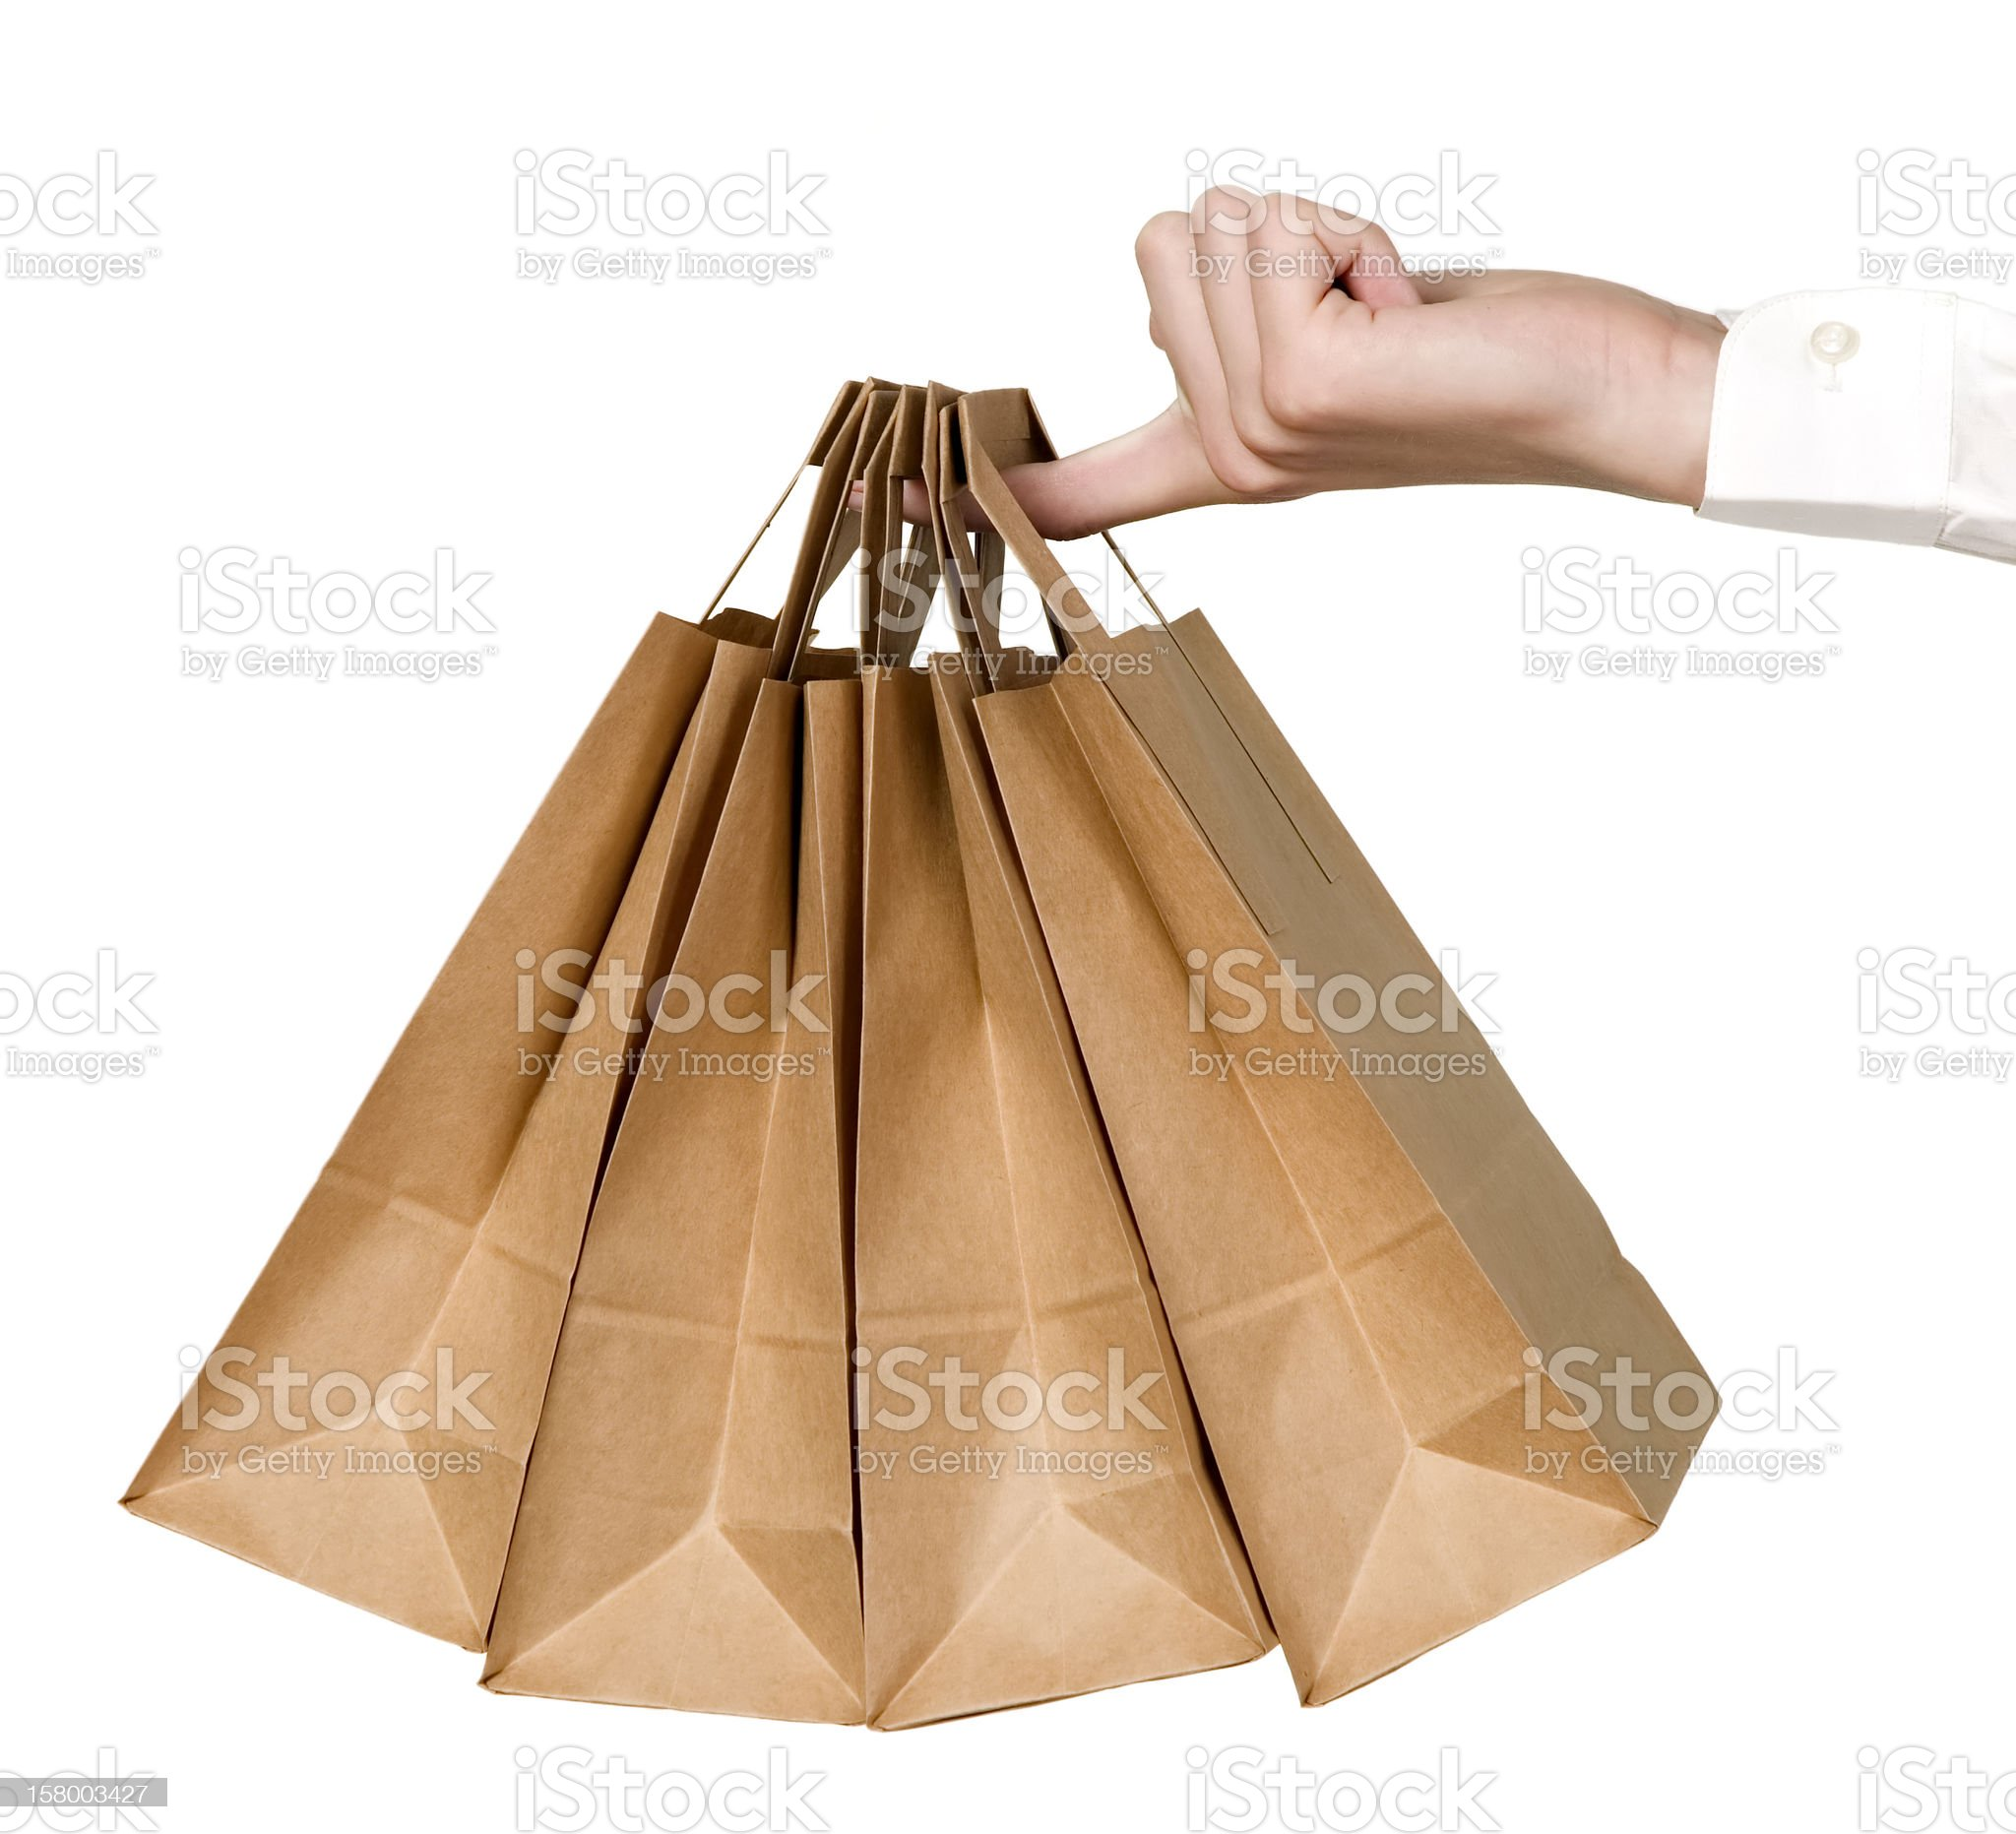 Many organic green paper bags royalty-free stock photo